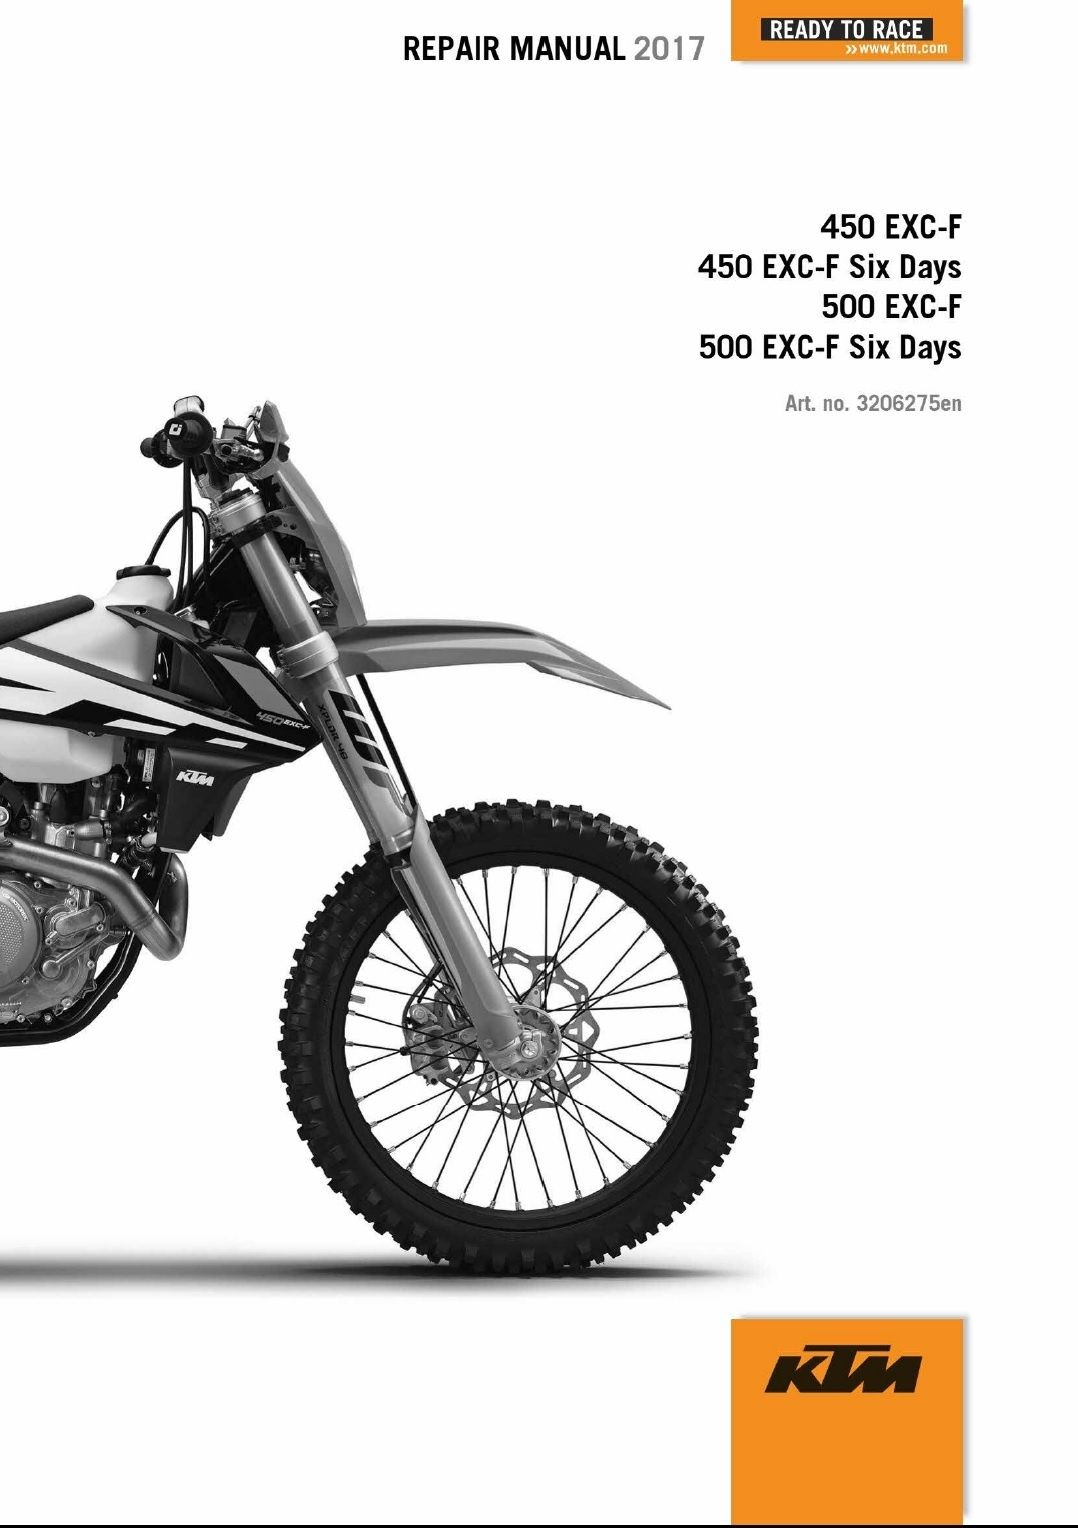 hight resolution of covers all models listed above all repairs a z this is a genuine ktm complete service repiar manual for 2017 ktm 450 500 exc f